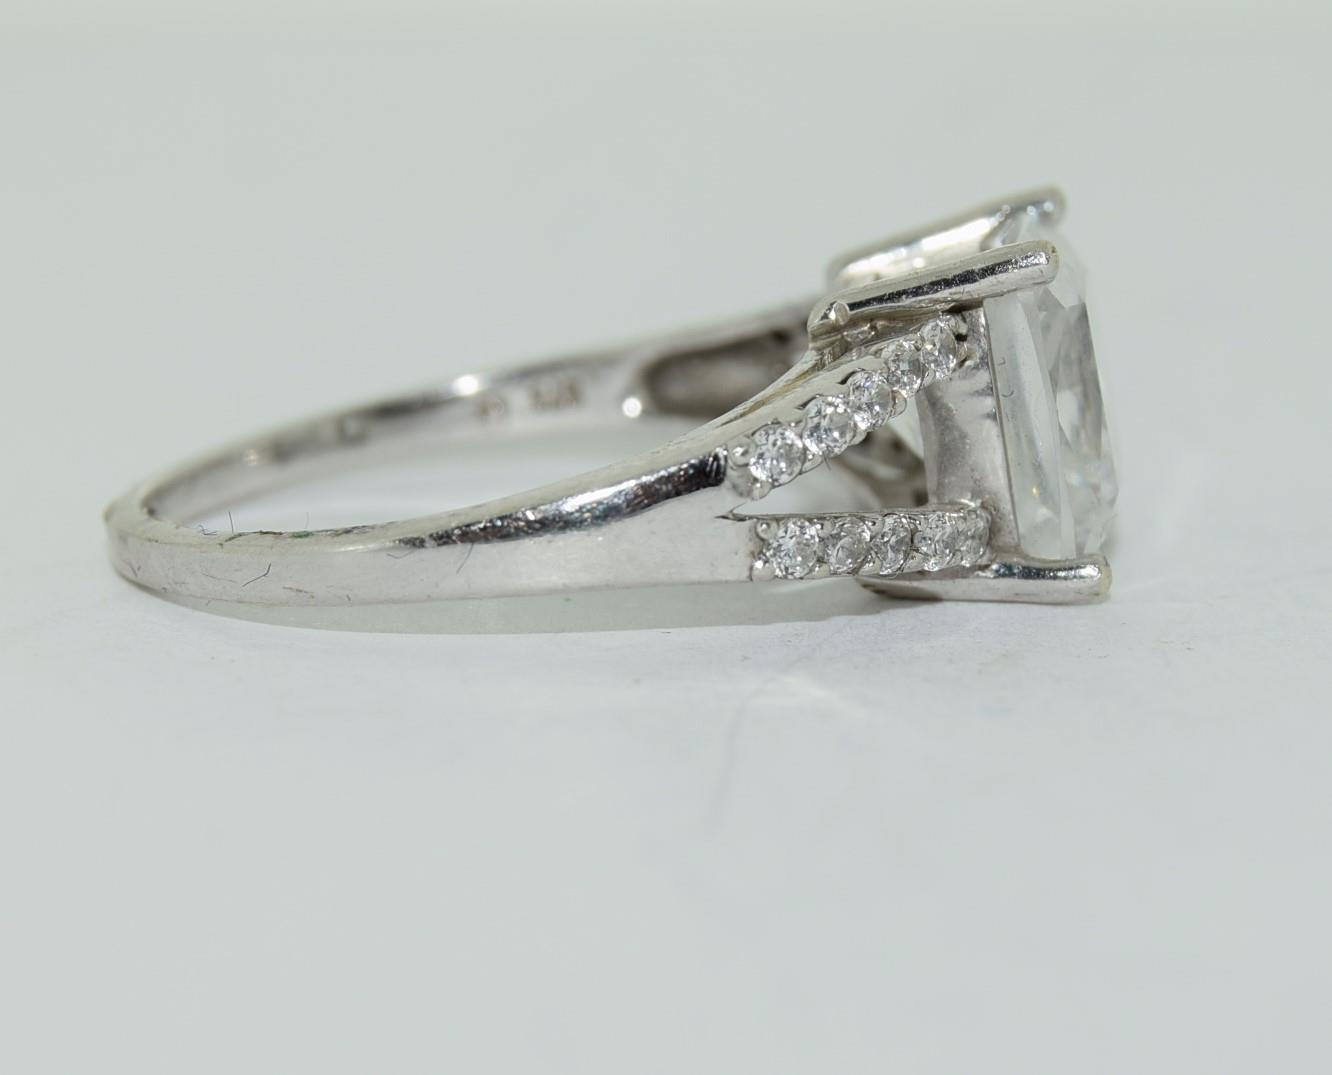 9ct white gold ladies square set solitare ring size R - Image 4 of 12